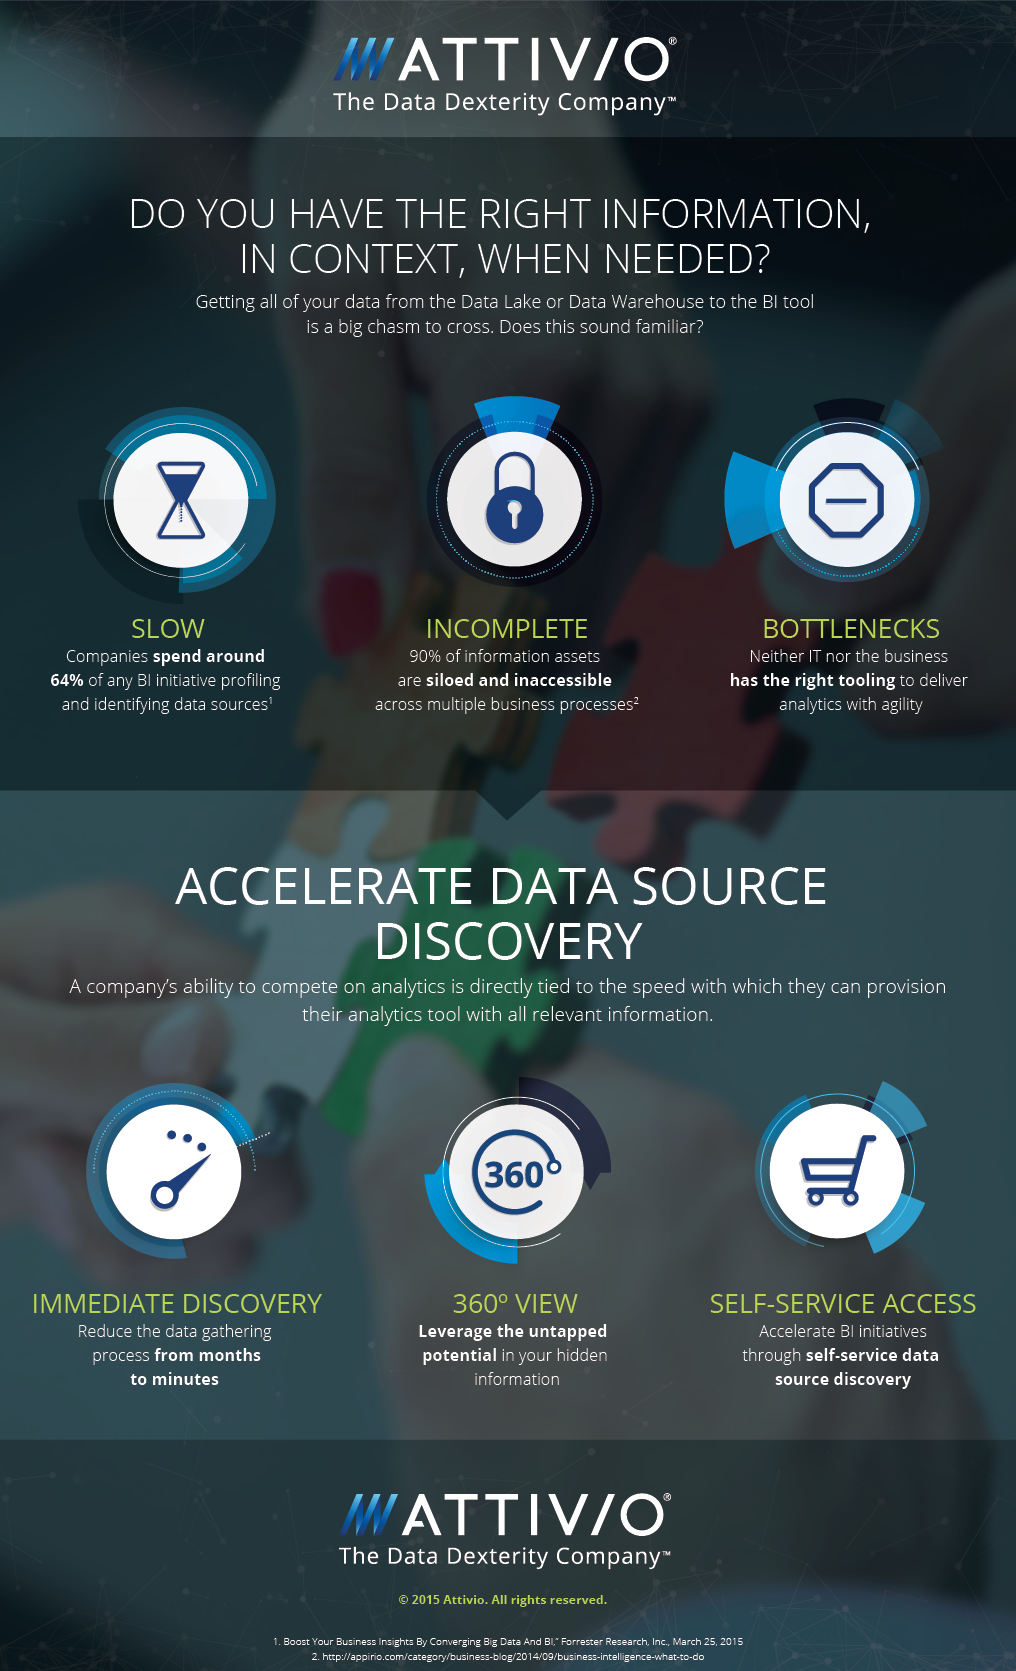 Accelerate Data Discovery